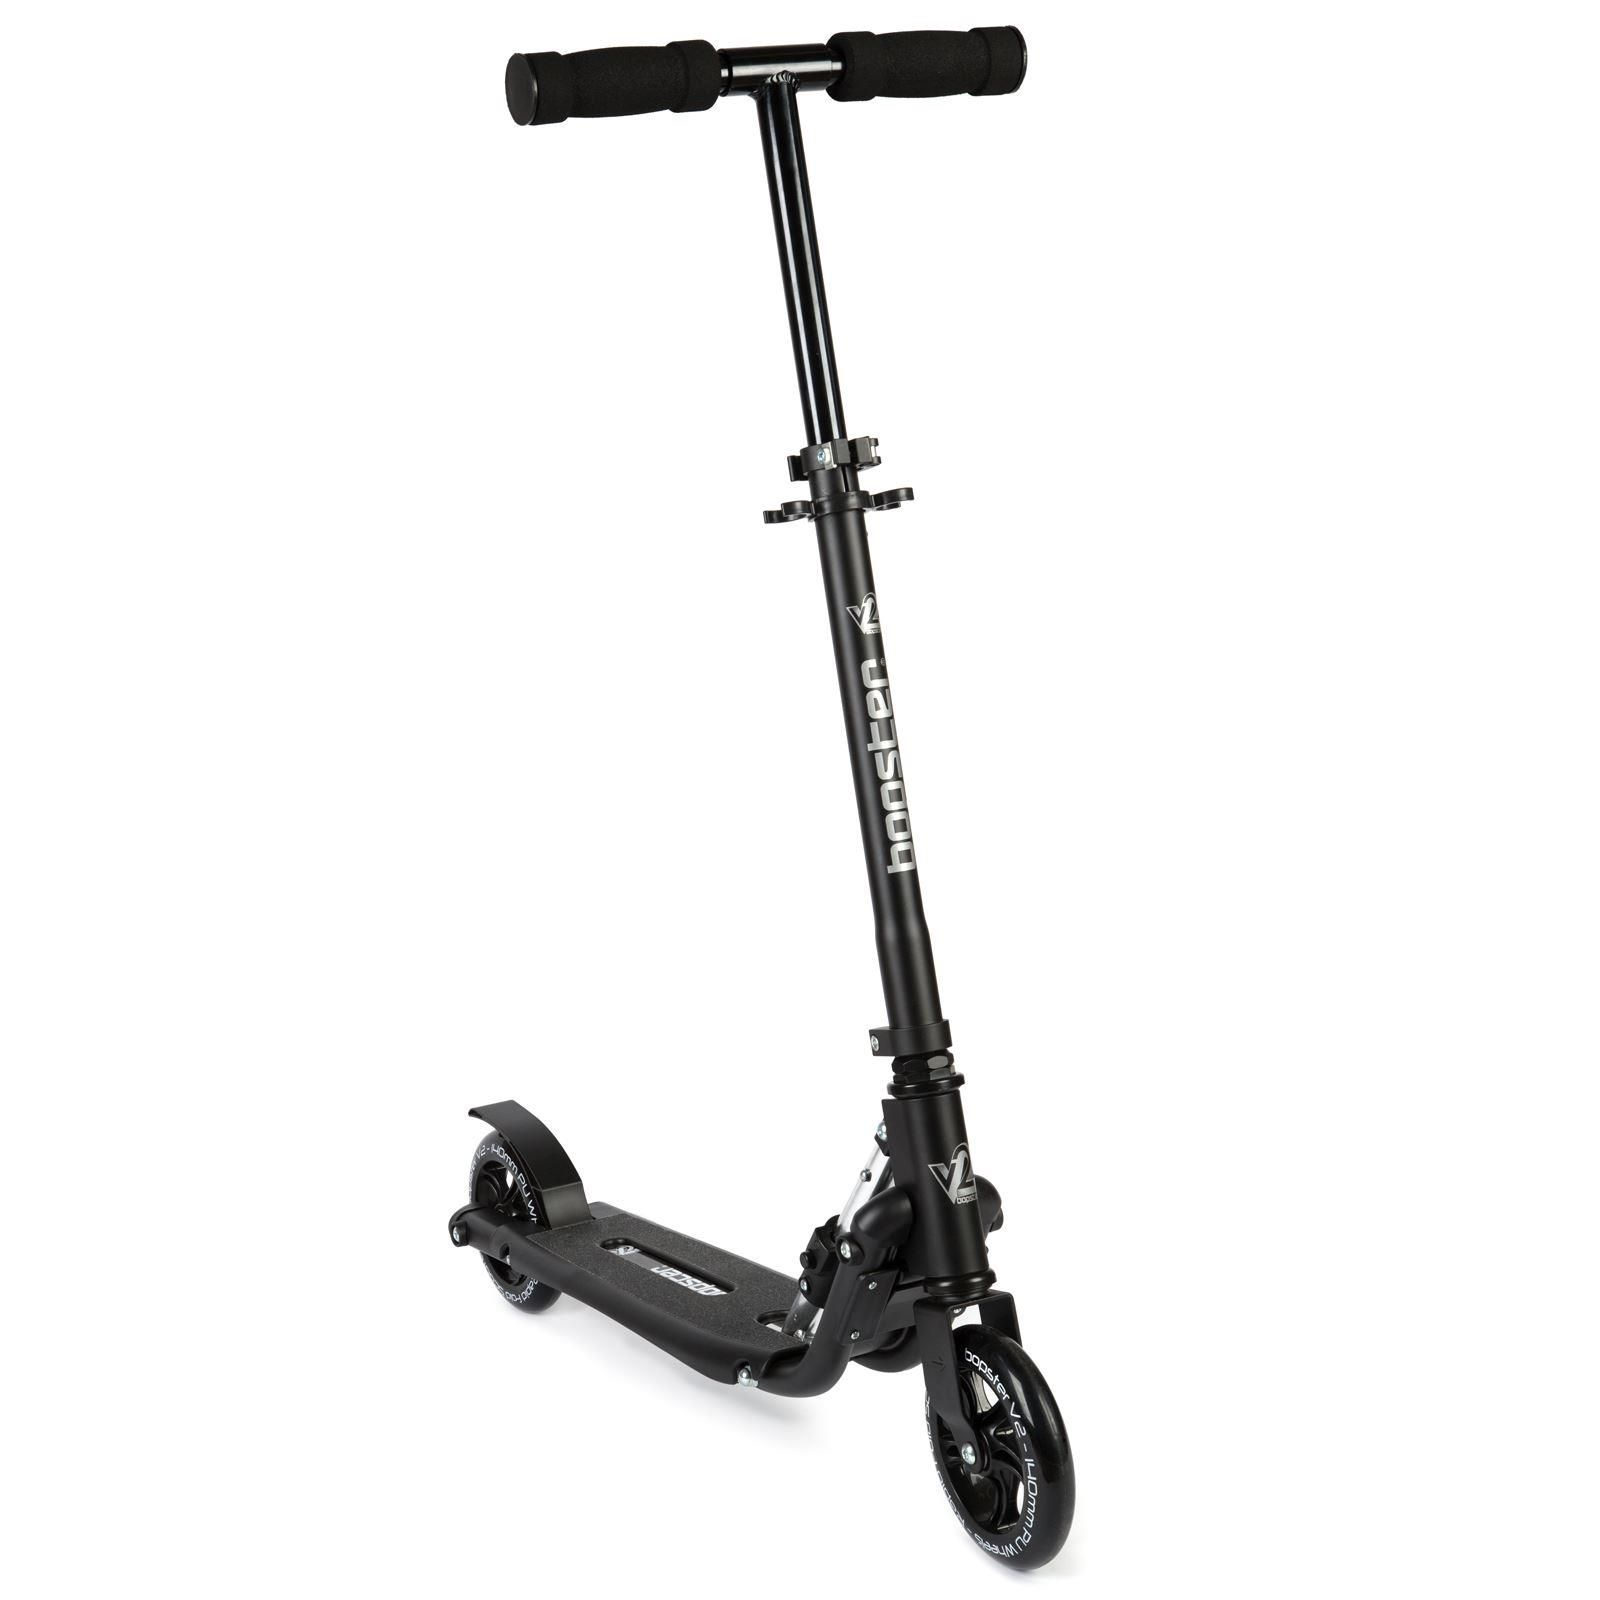 Bopster 2 Wheeled Scooter Folding V2 In Line Racing Kick Sport Ride-On - Black